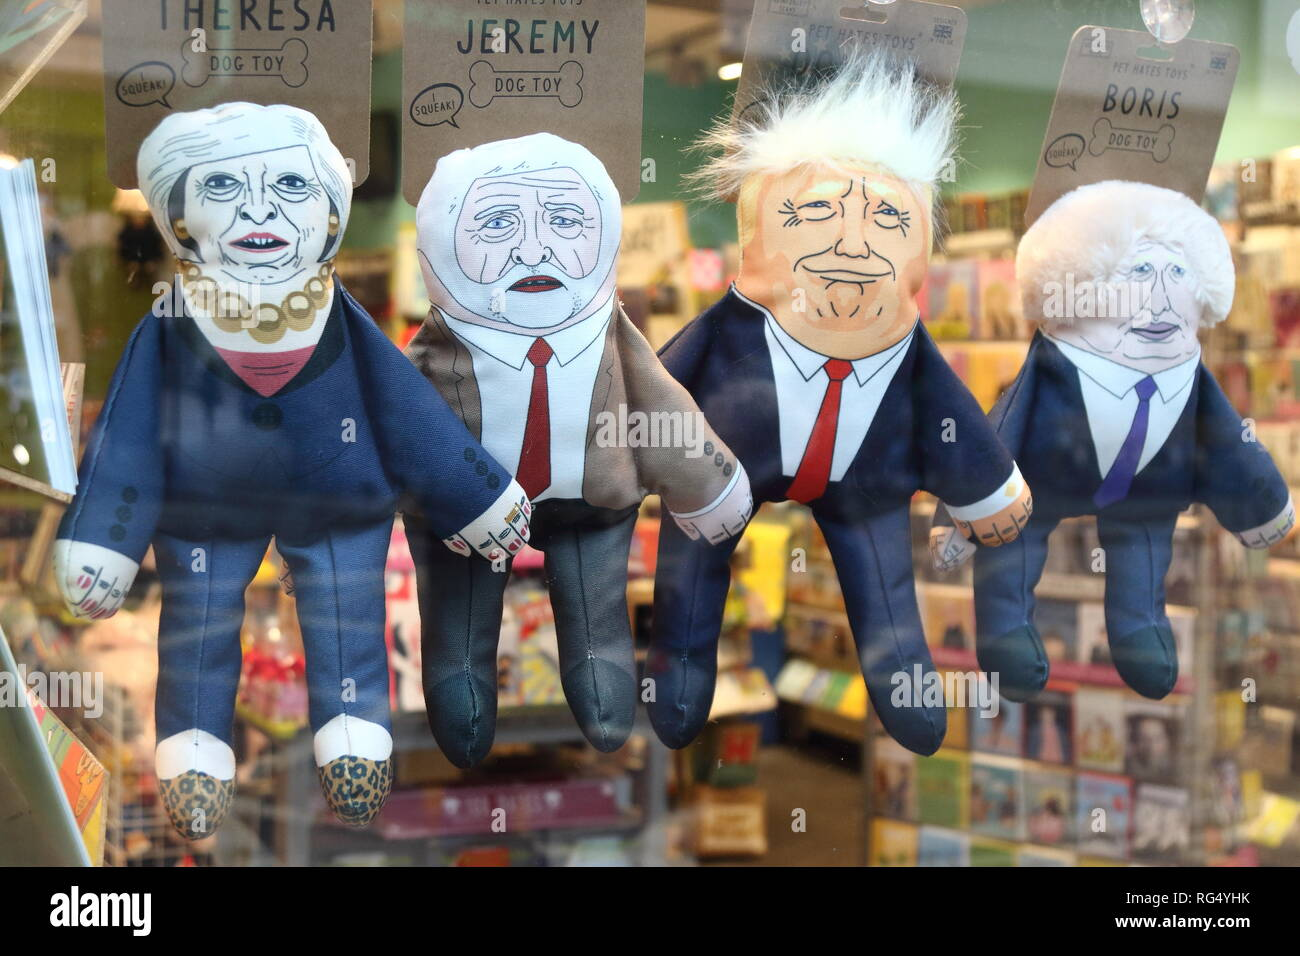 Humorous puppets of politicians are seen on sale at the London shop - Theresa May (UK Prime Minister), Jeremy Corbyn (Leader of UK Labour Party) Donald Trump (US President) and Boris Johnson (former UK Foreign Secretary and Pro Brexiteer) - Stock Image